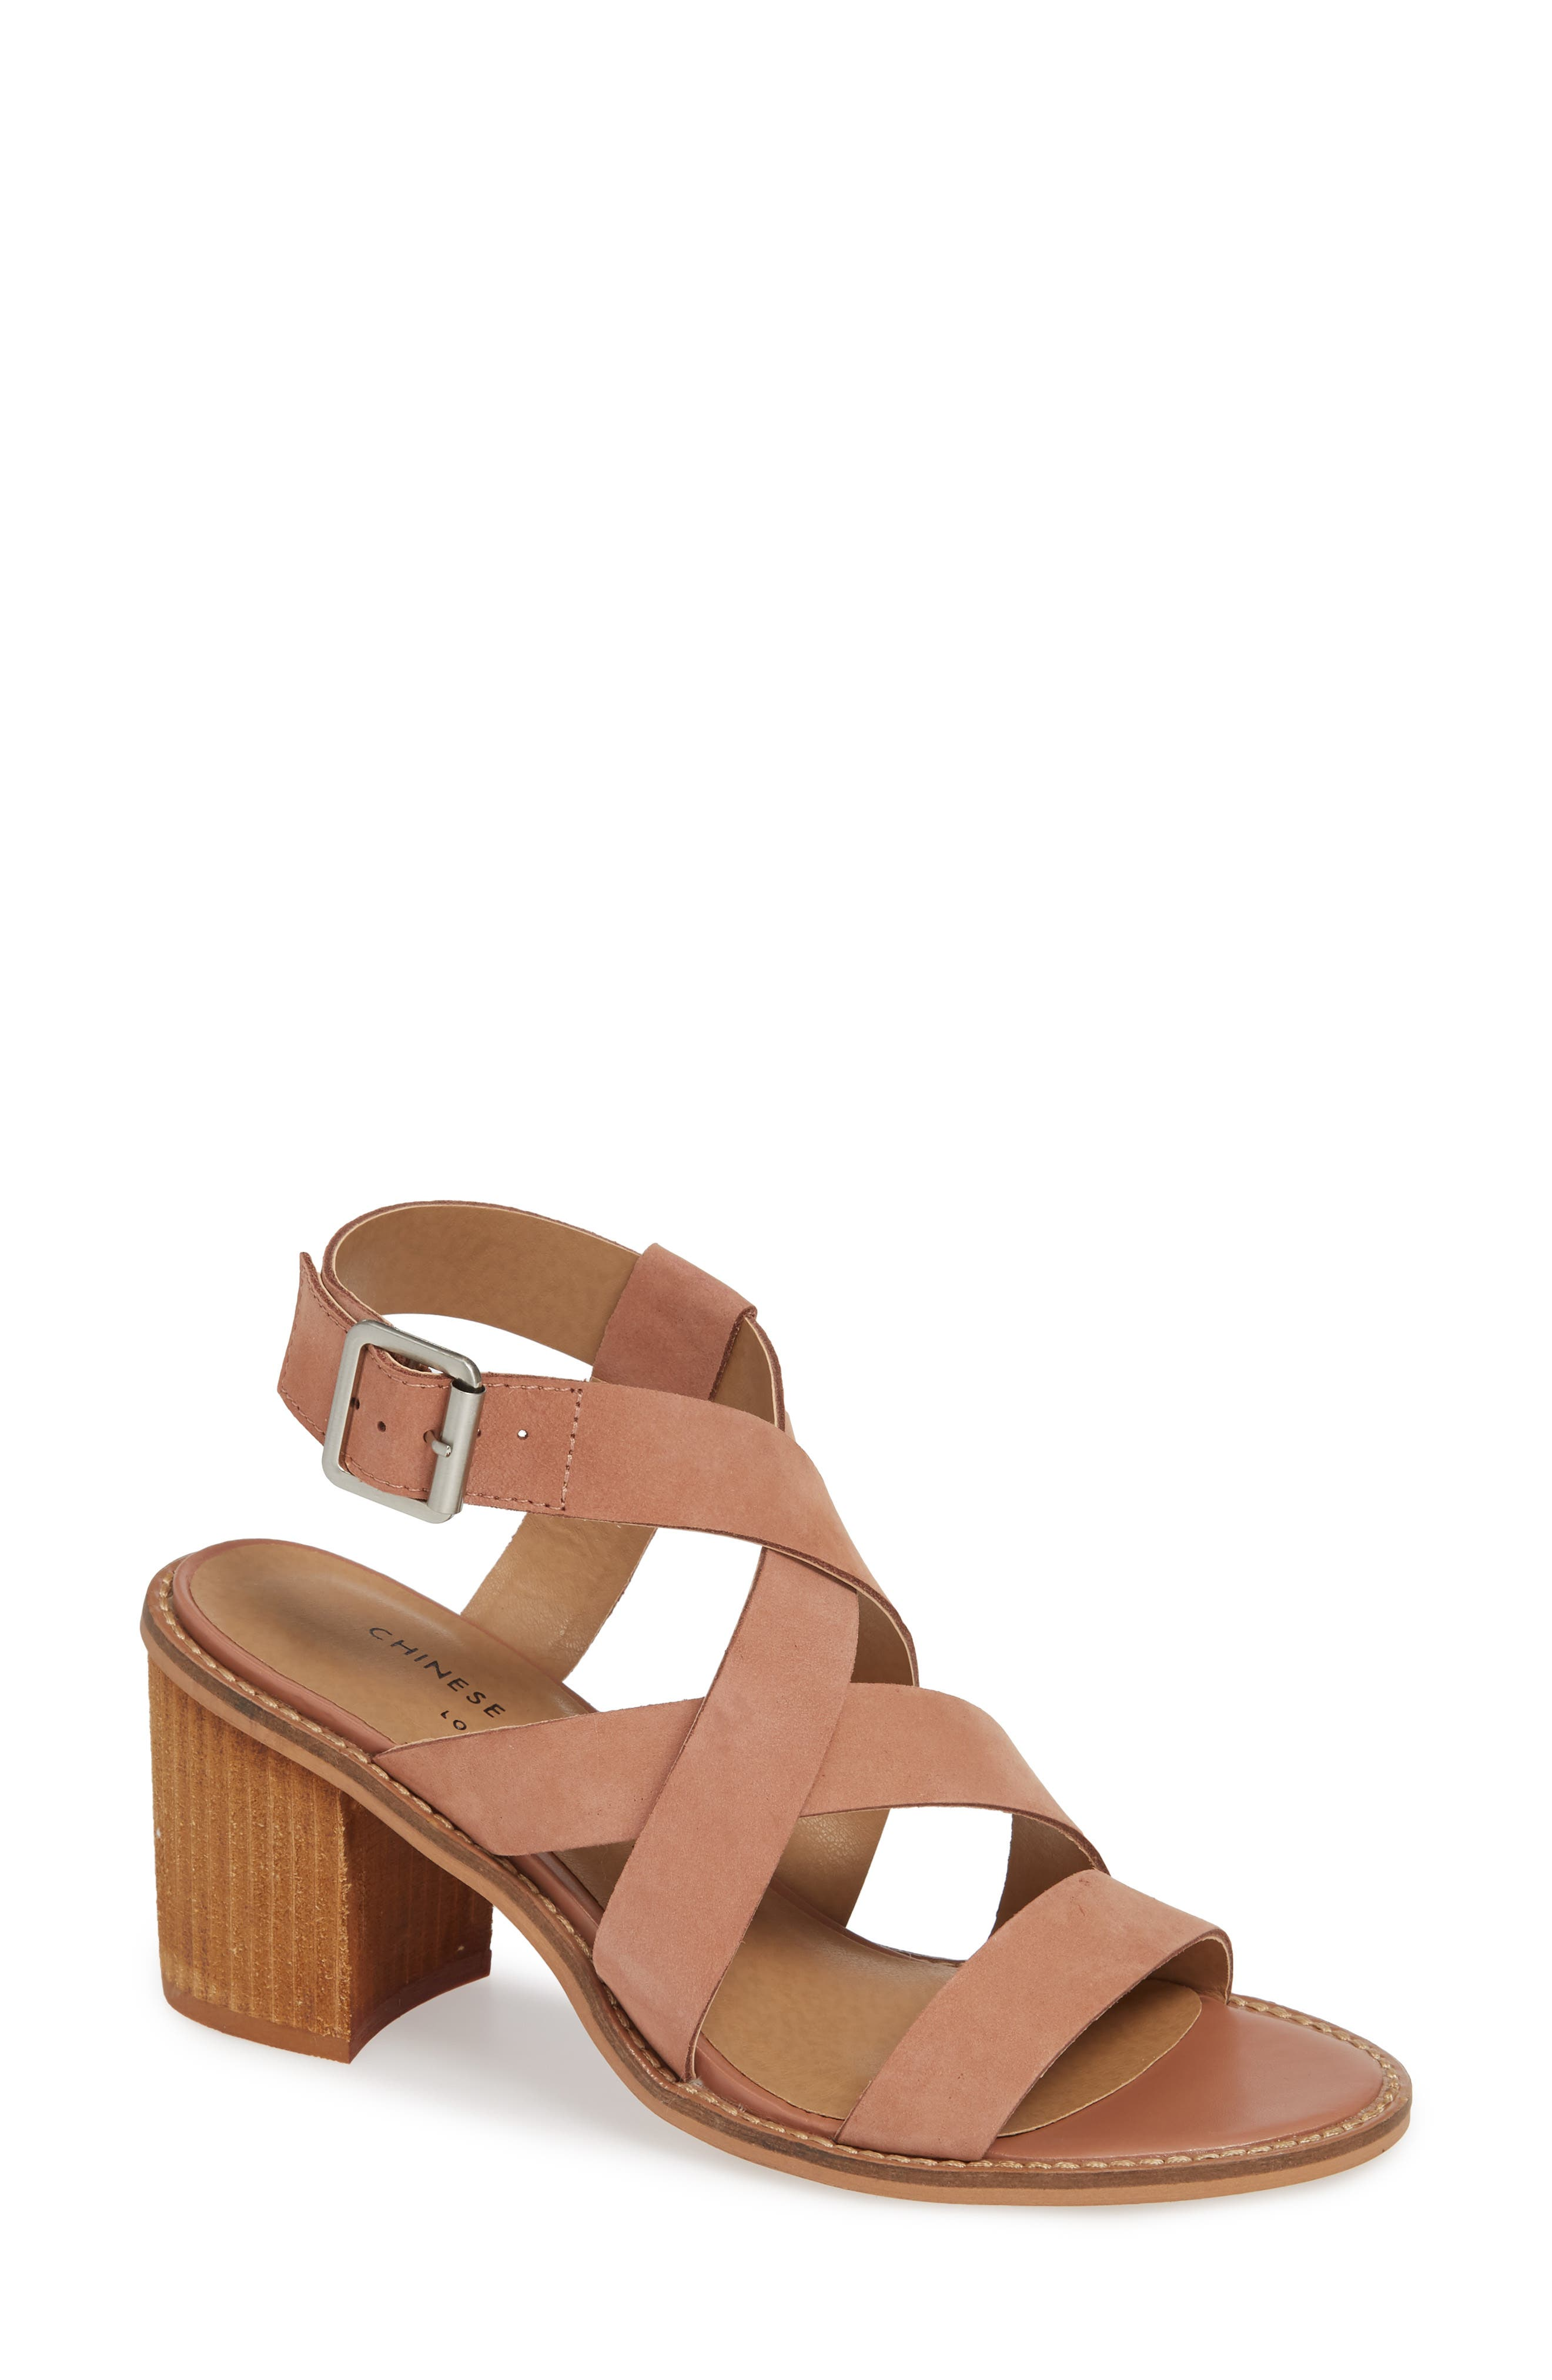 Chinese Laundry Cacey Sandal- Brown